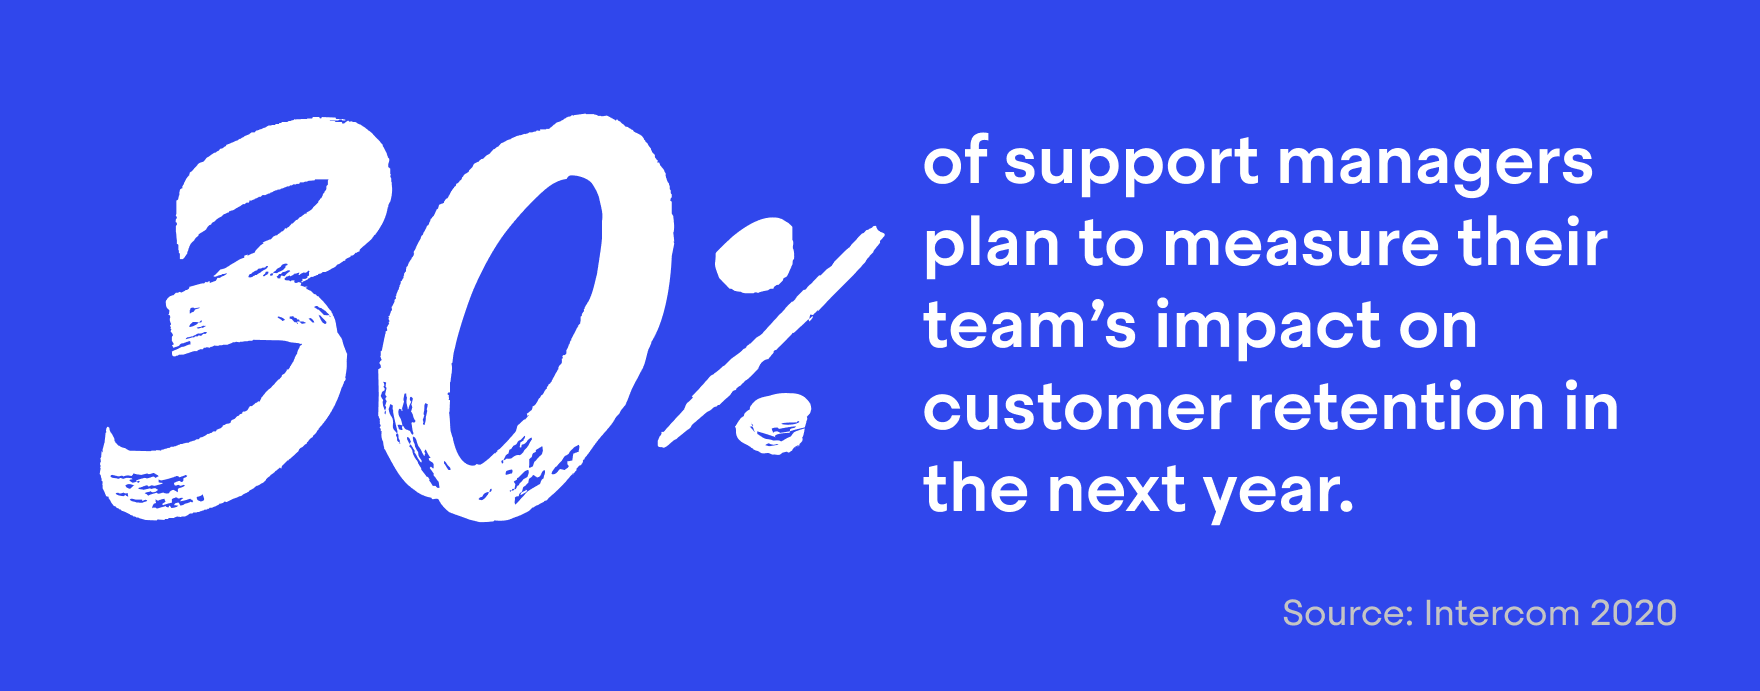 30% of support managers plan to measure their team's impact on customer retention in the next year